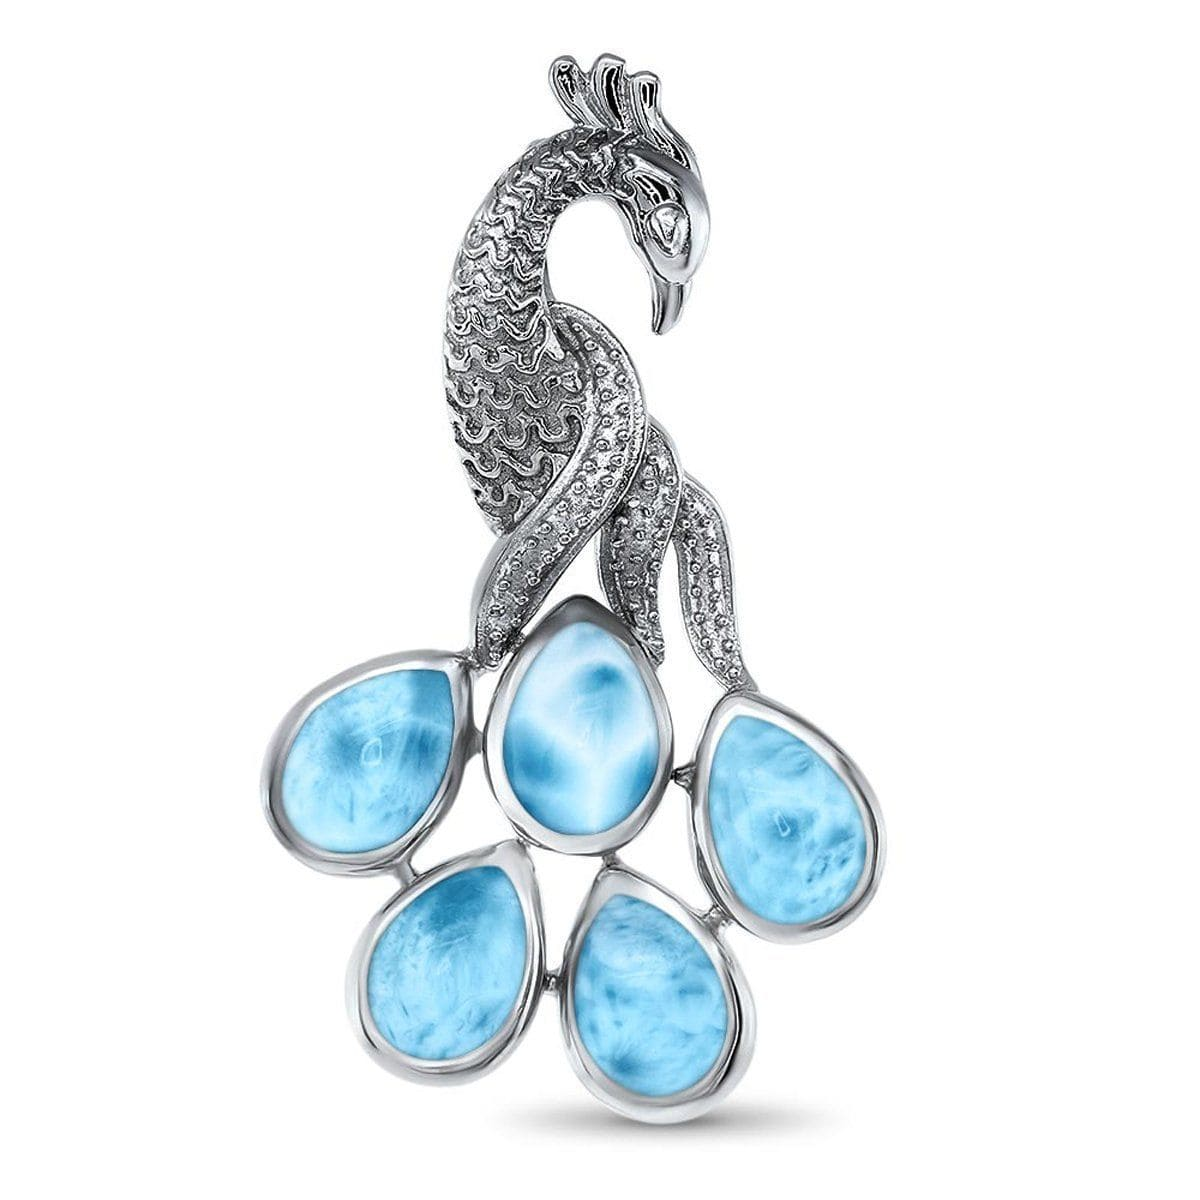 Wildlife Peacock Necklace - Npeac00-00-Marahlago Larimar-Renee Taylor Gallery